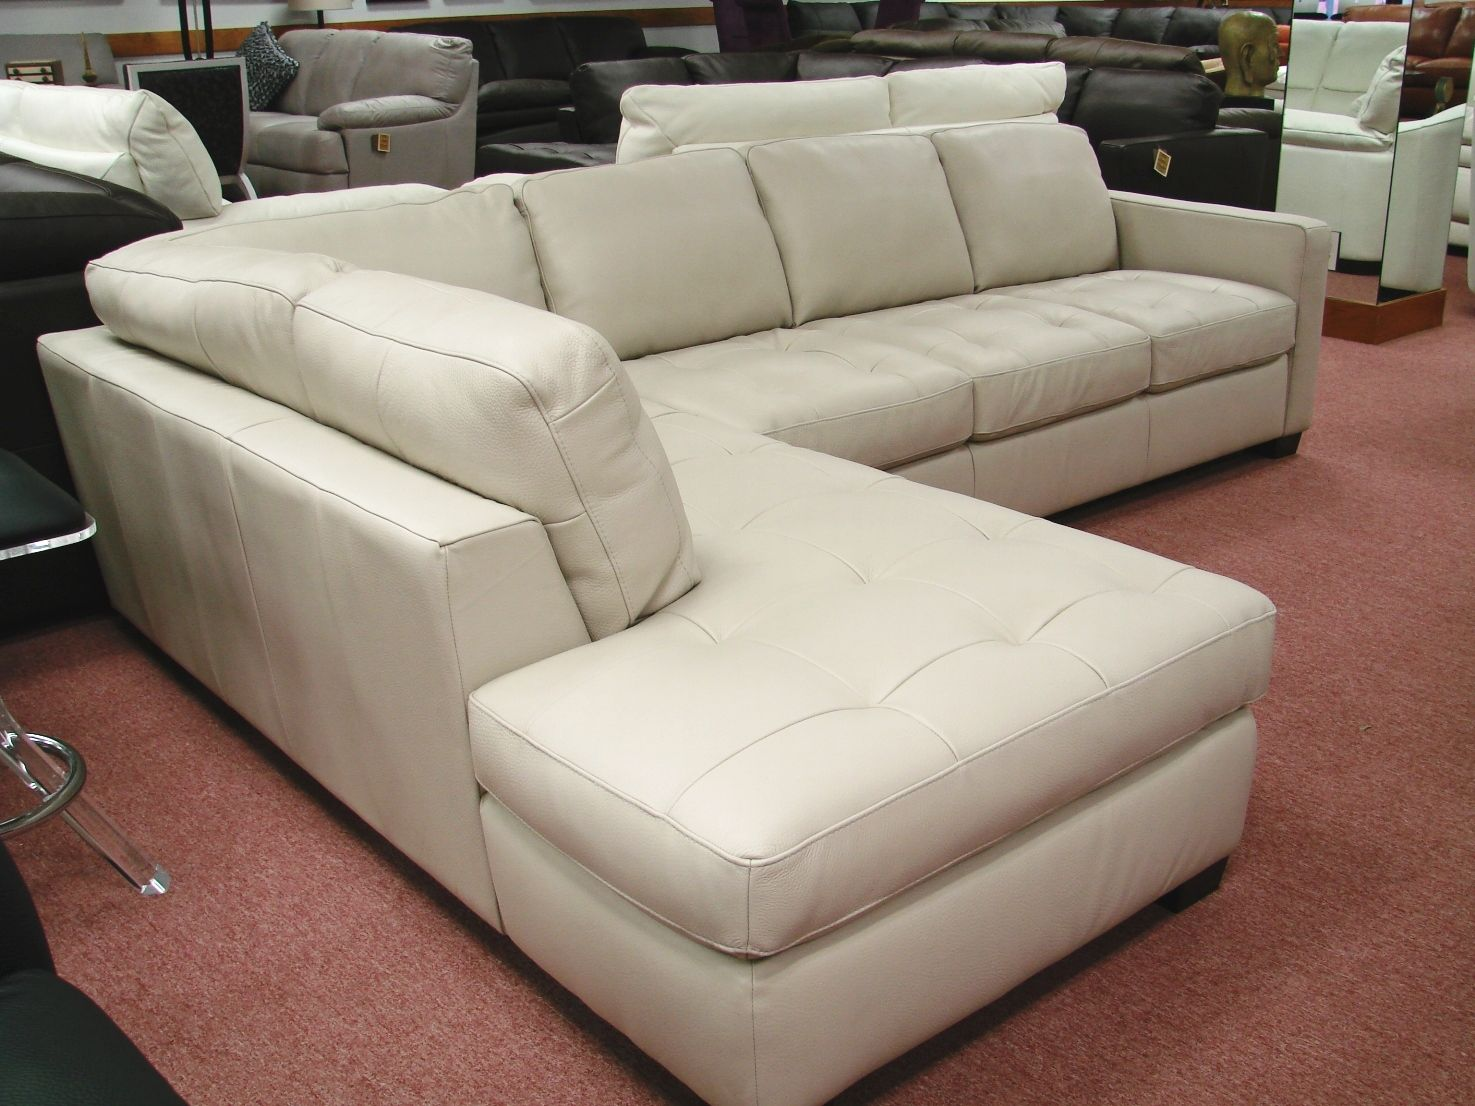 wonderful 3 seater recliner sofa picture-Modern 3 Seater Recliner sofa Concept